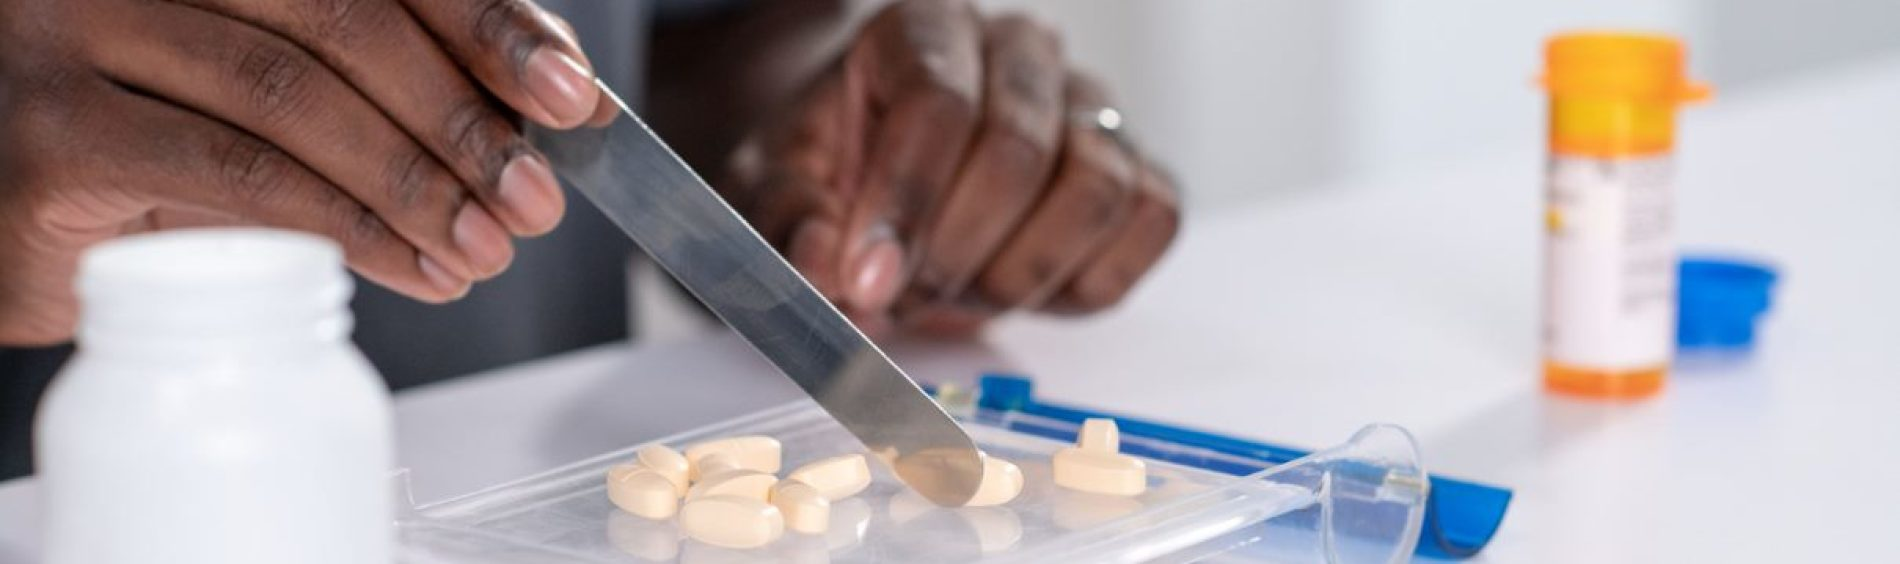 Associate counting out pills on tray